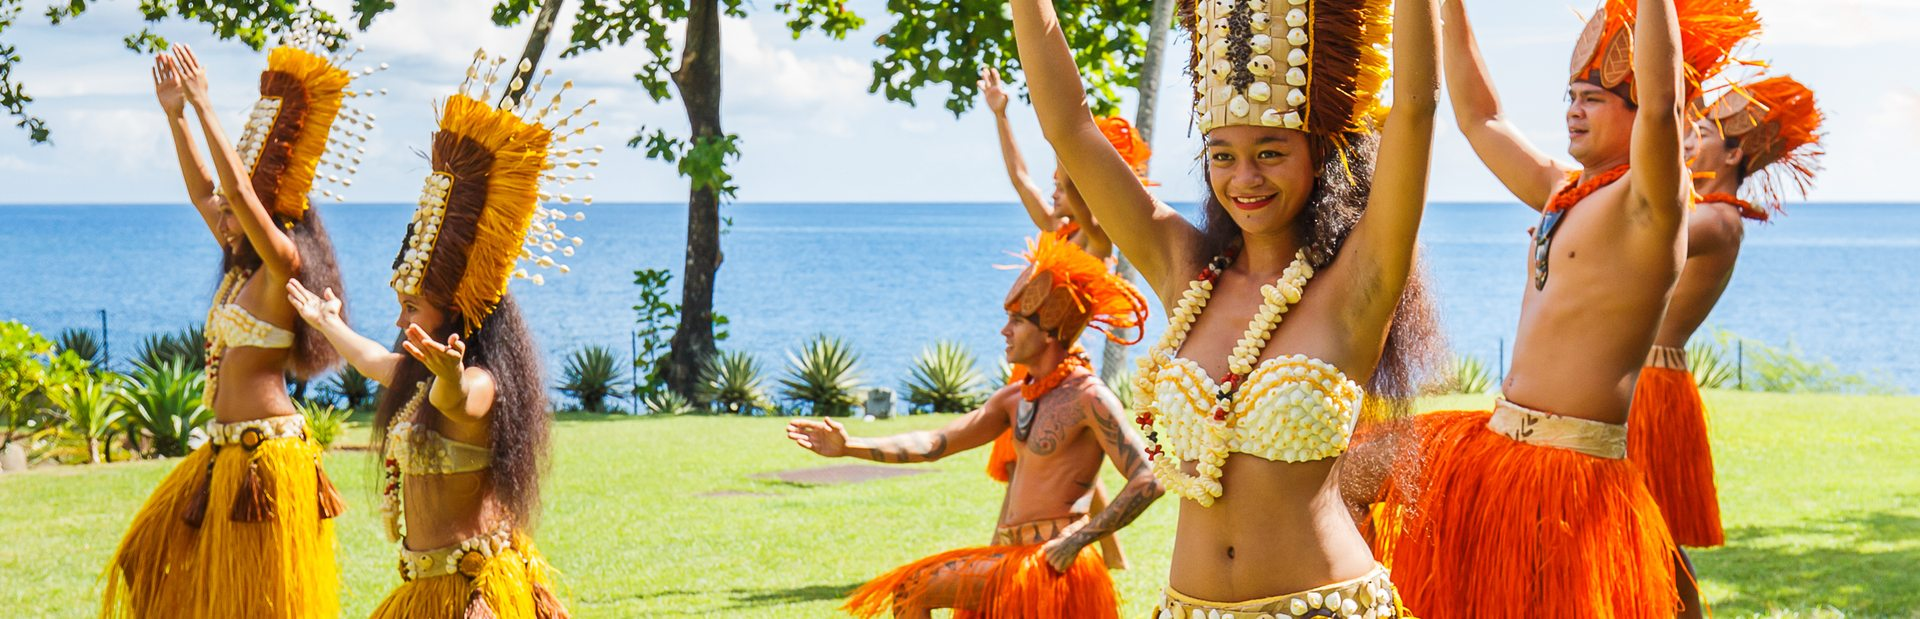 Things to see & do in the South Pacific